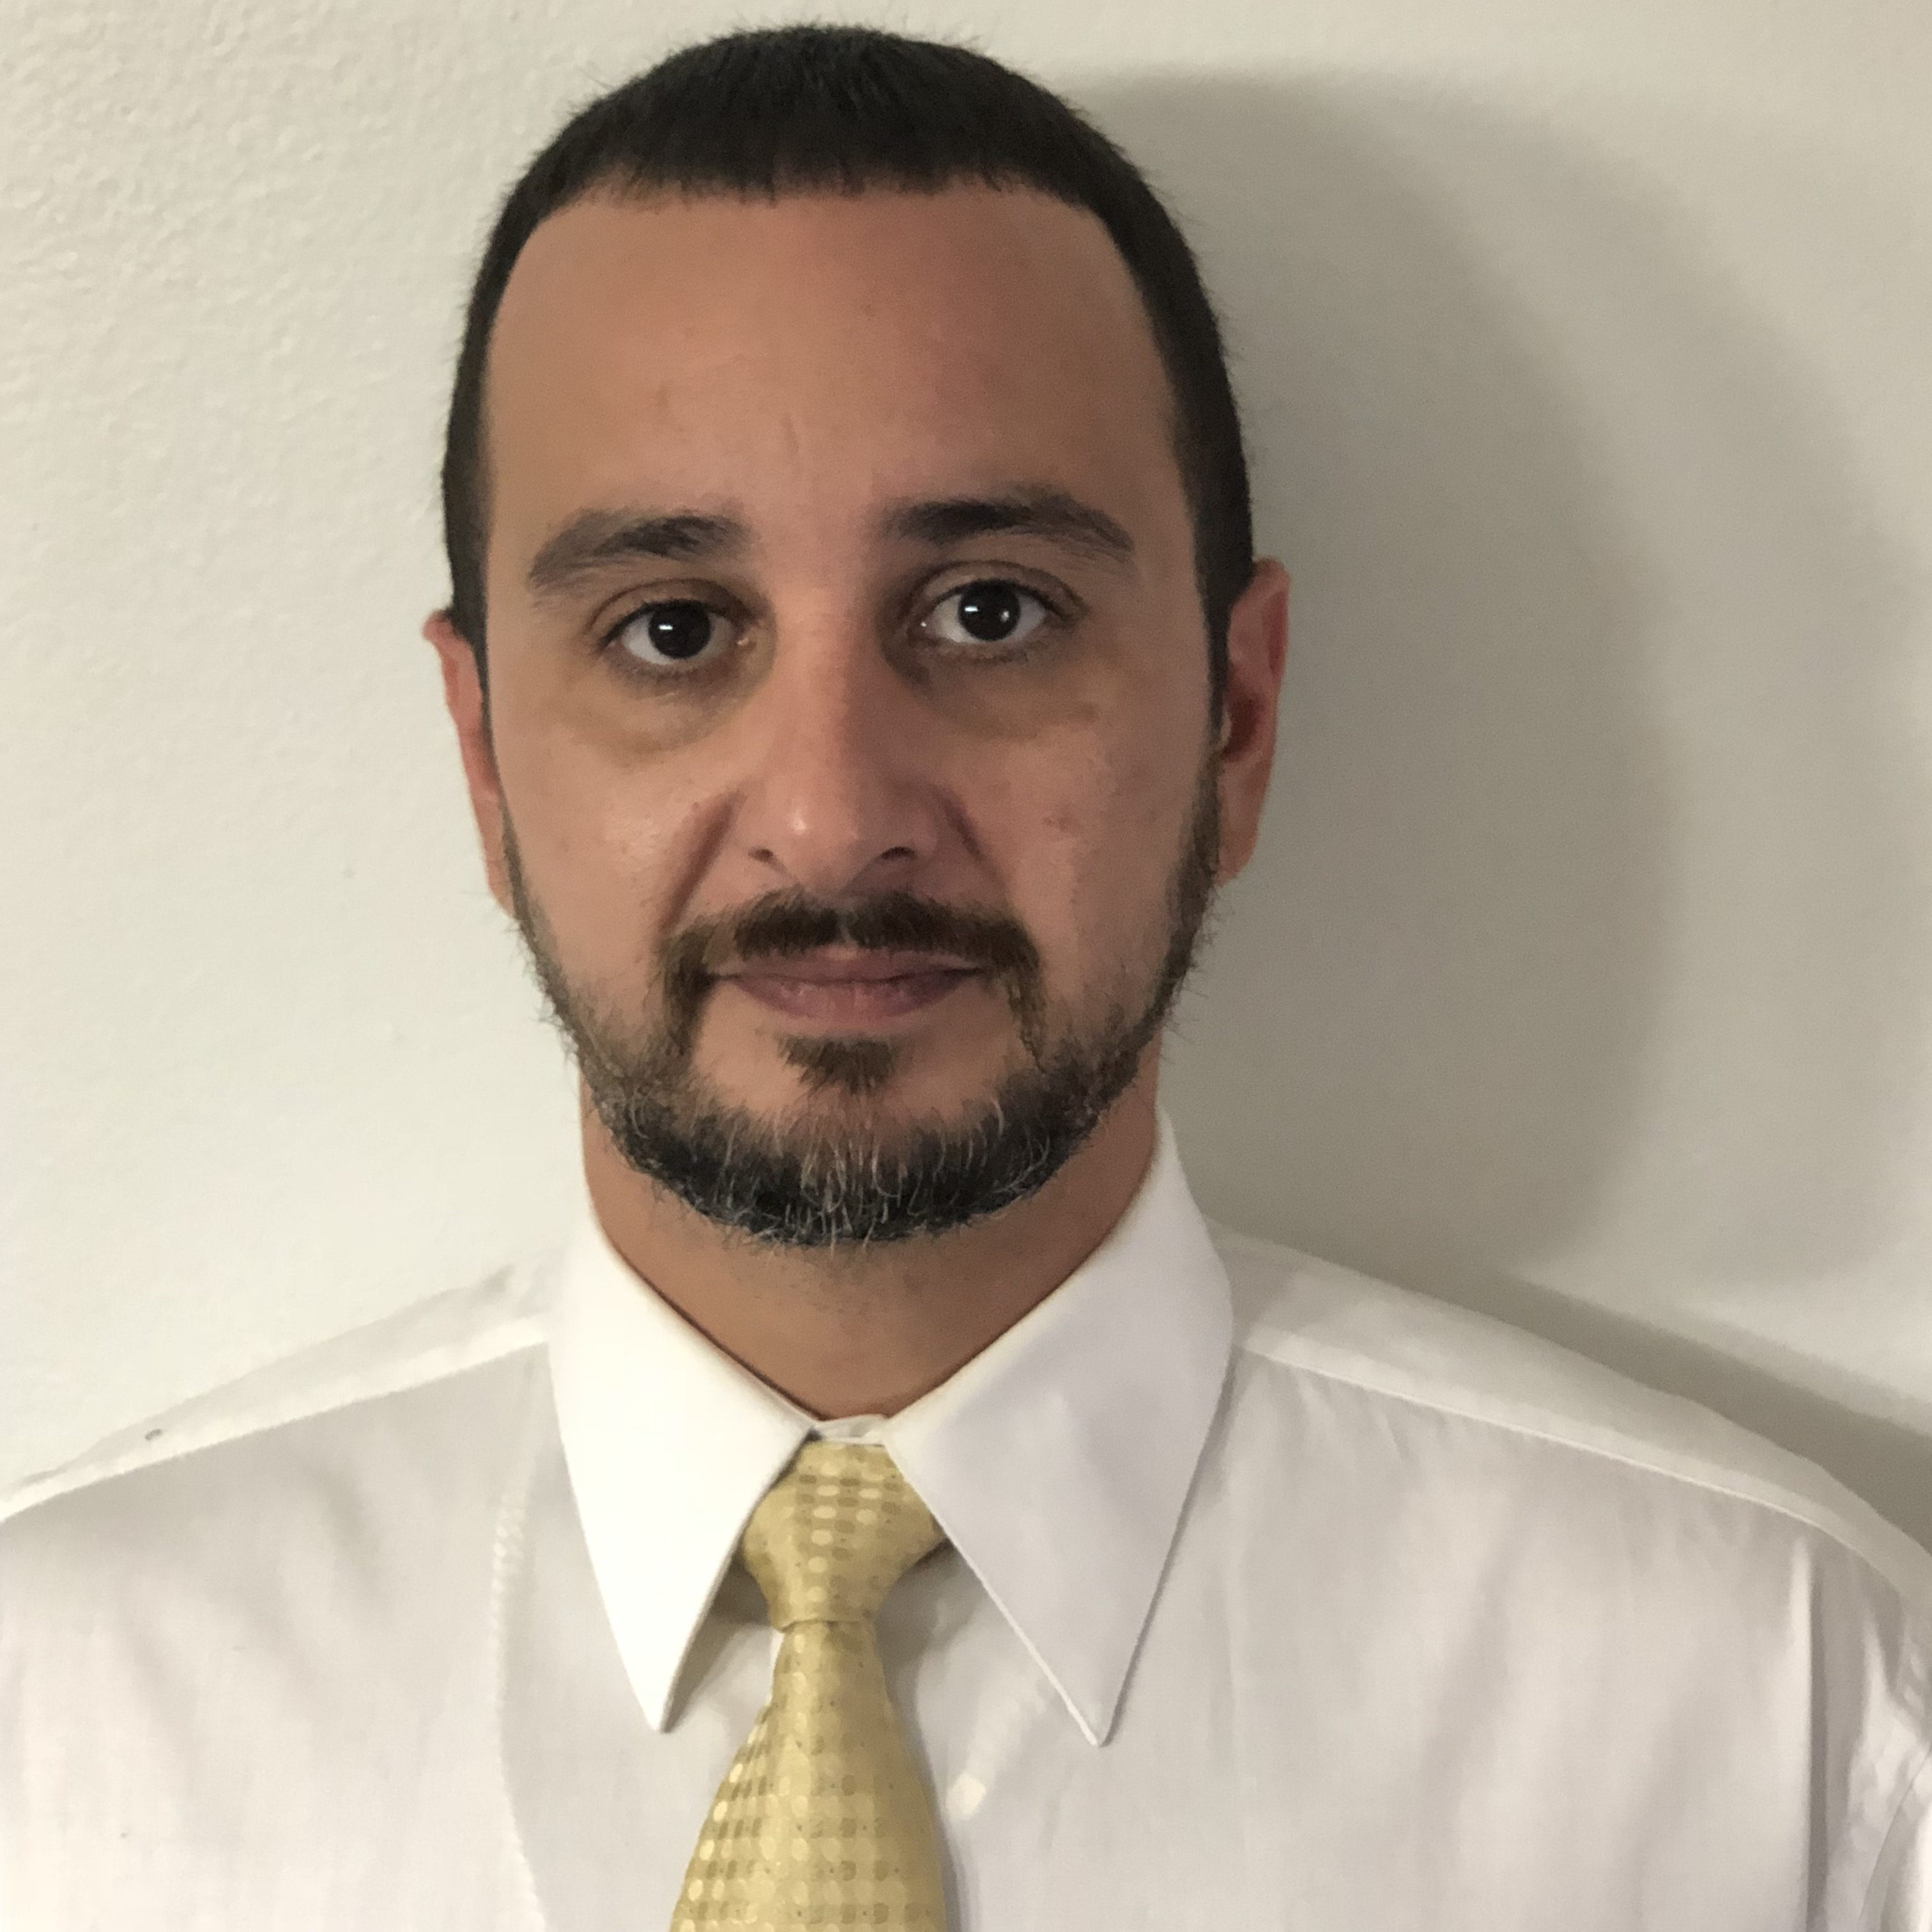 New in Best of Doral™ CPA introduces Michael Artigas.